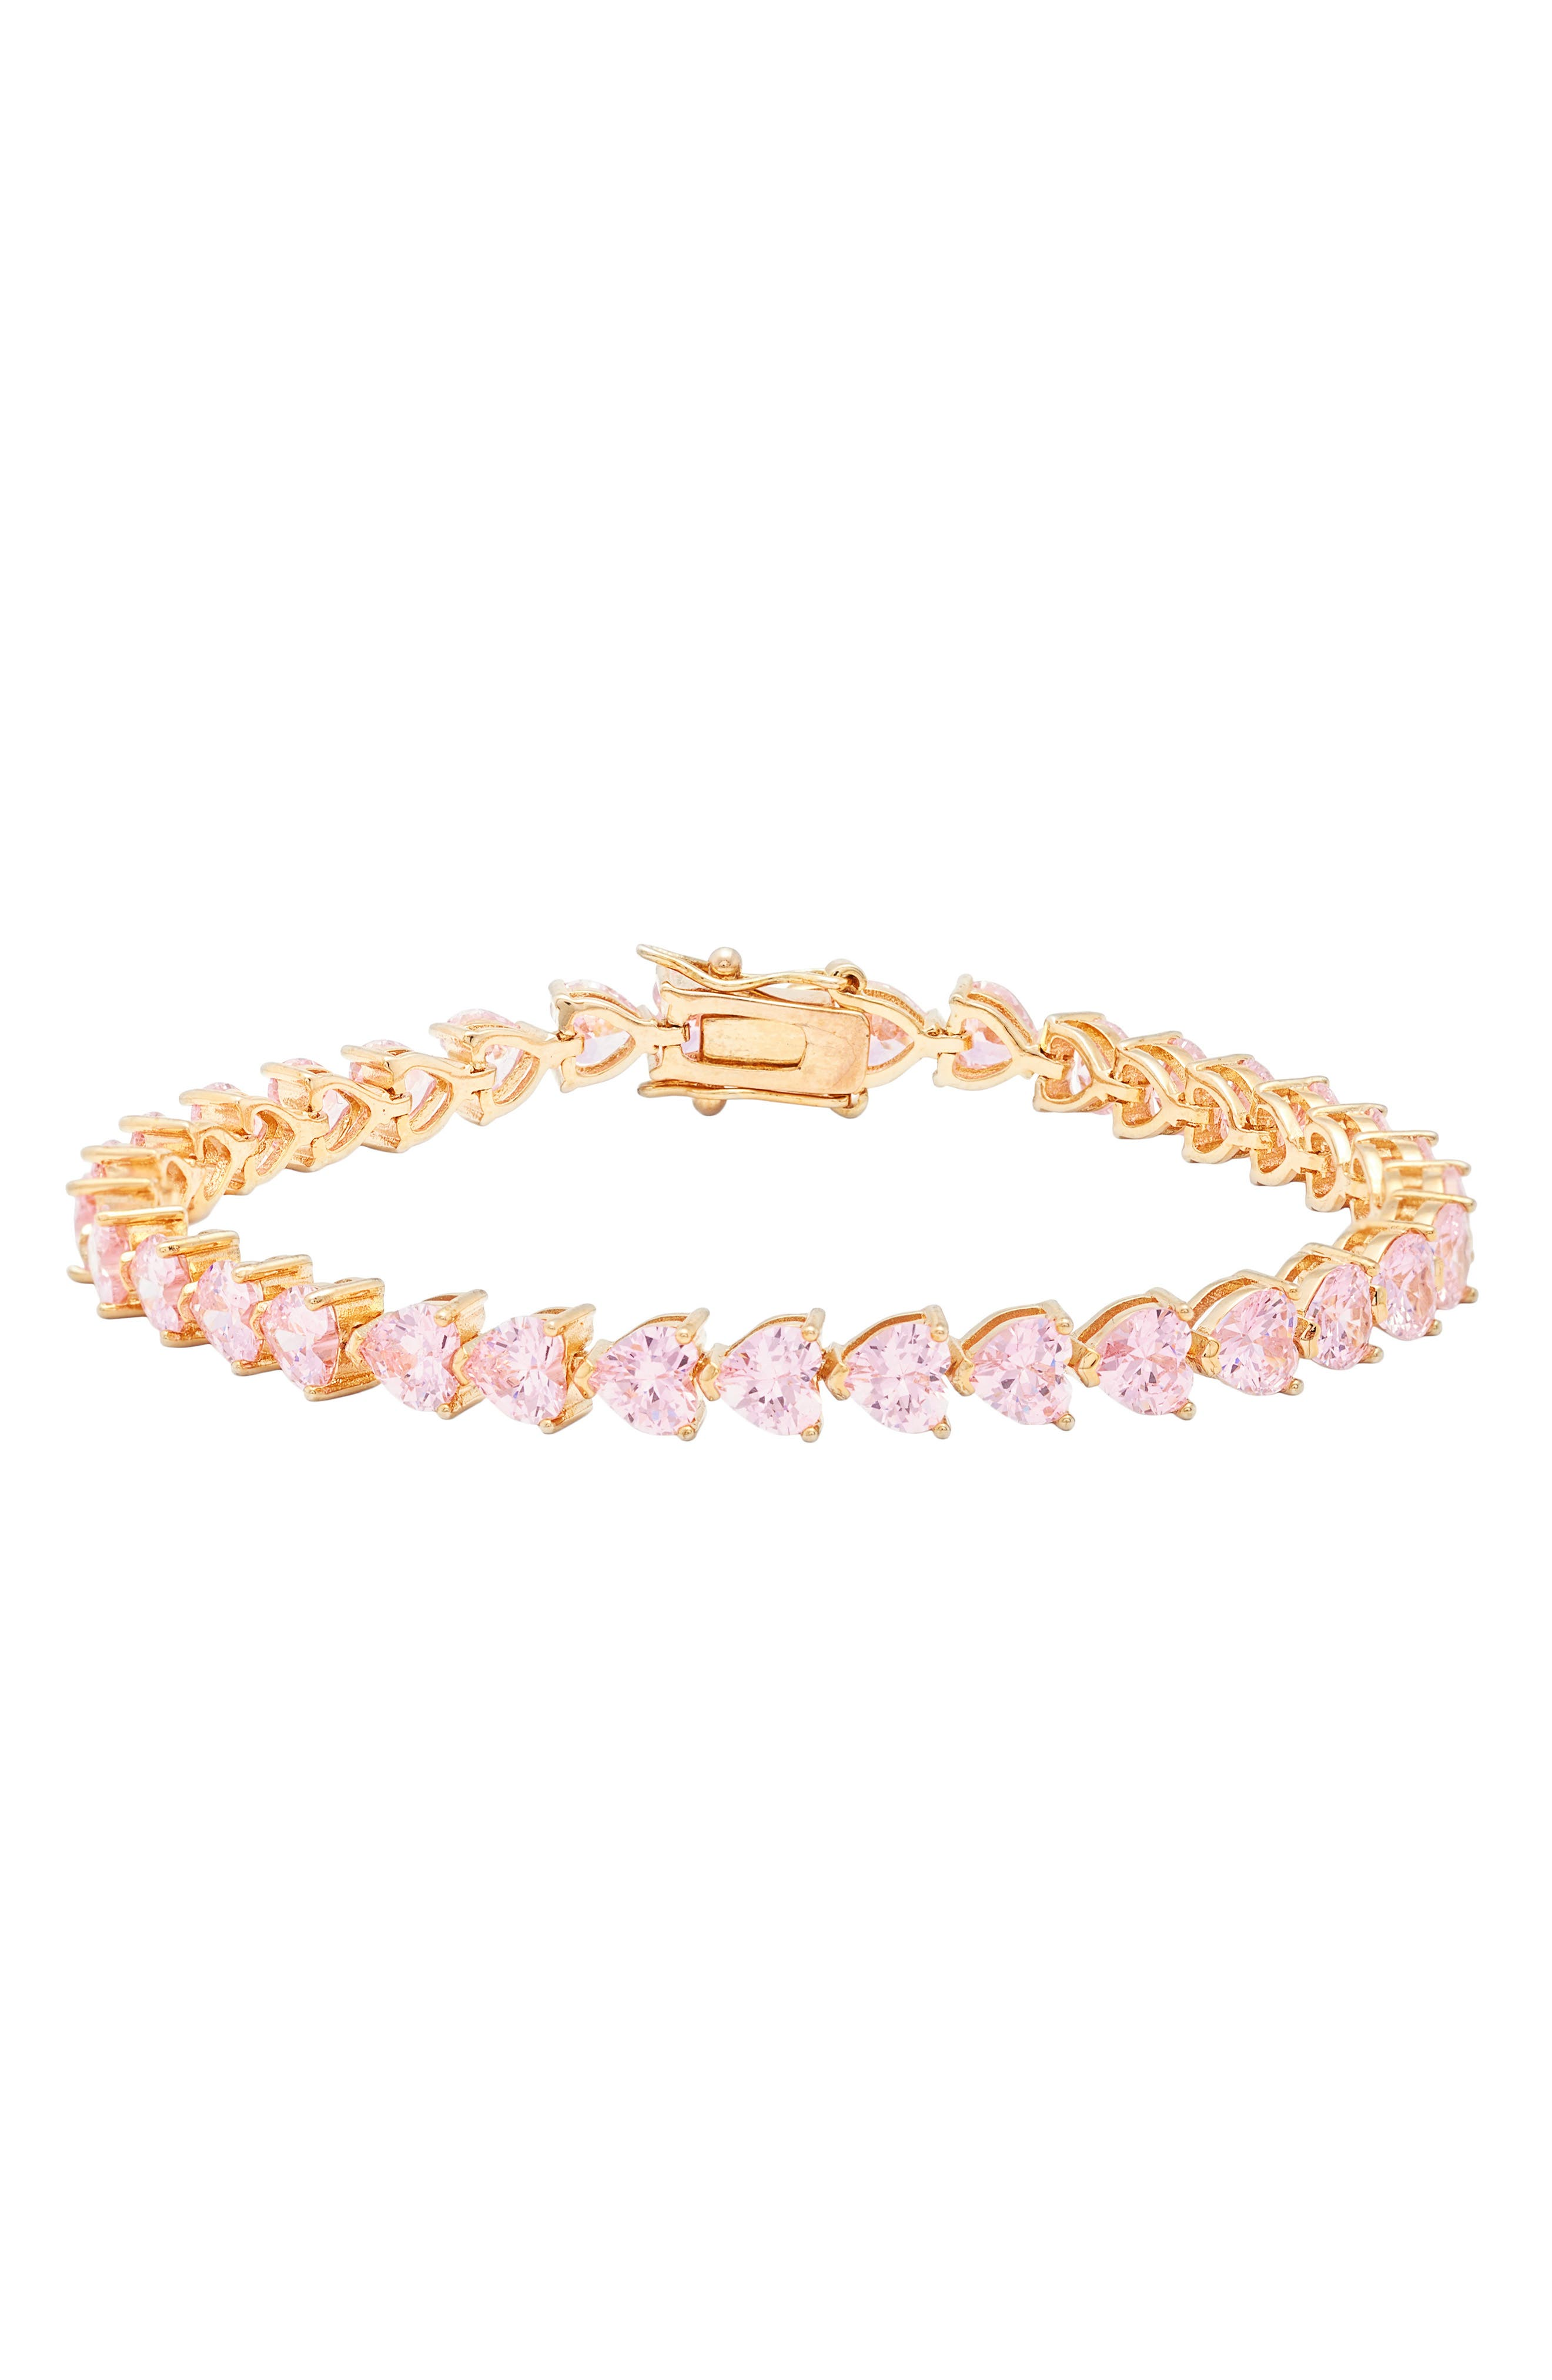 Heart Shaped Cubic Zirconia Link Bracelet,                             Main thumbnail 1, color,                             Pink/ Gold